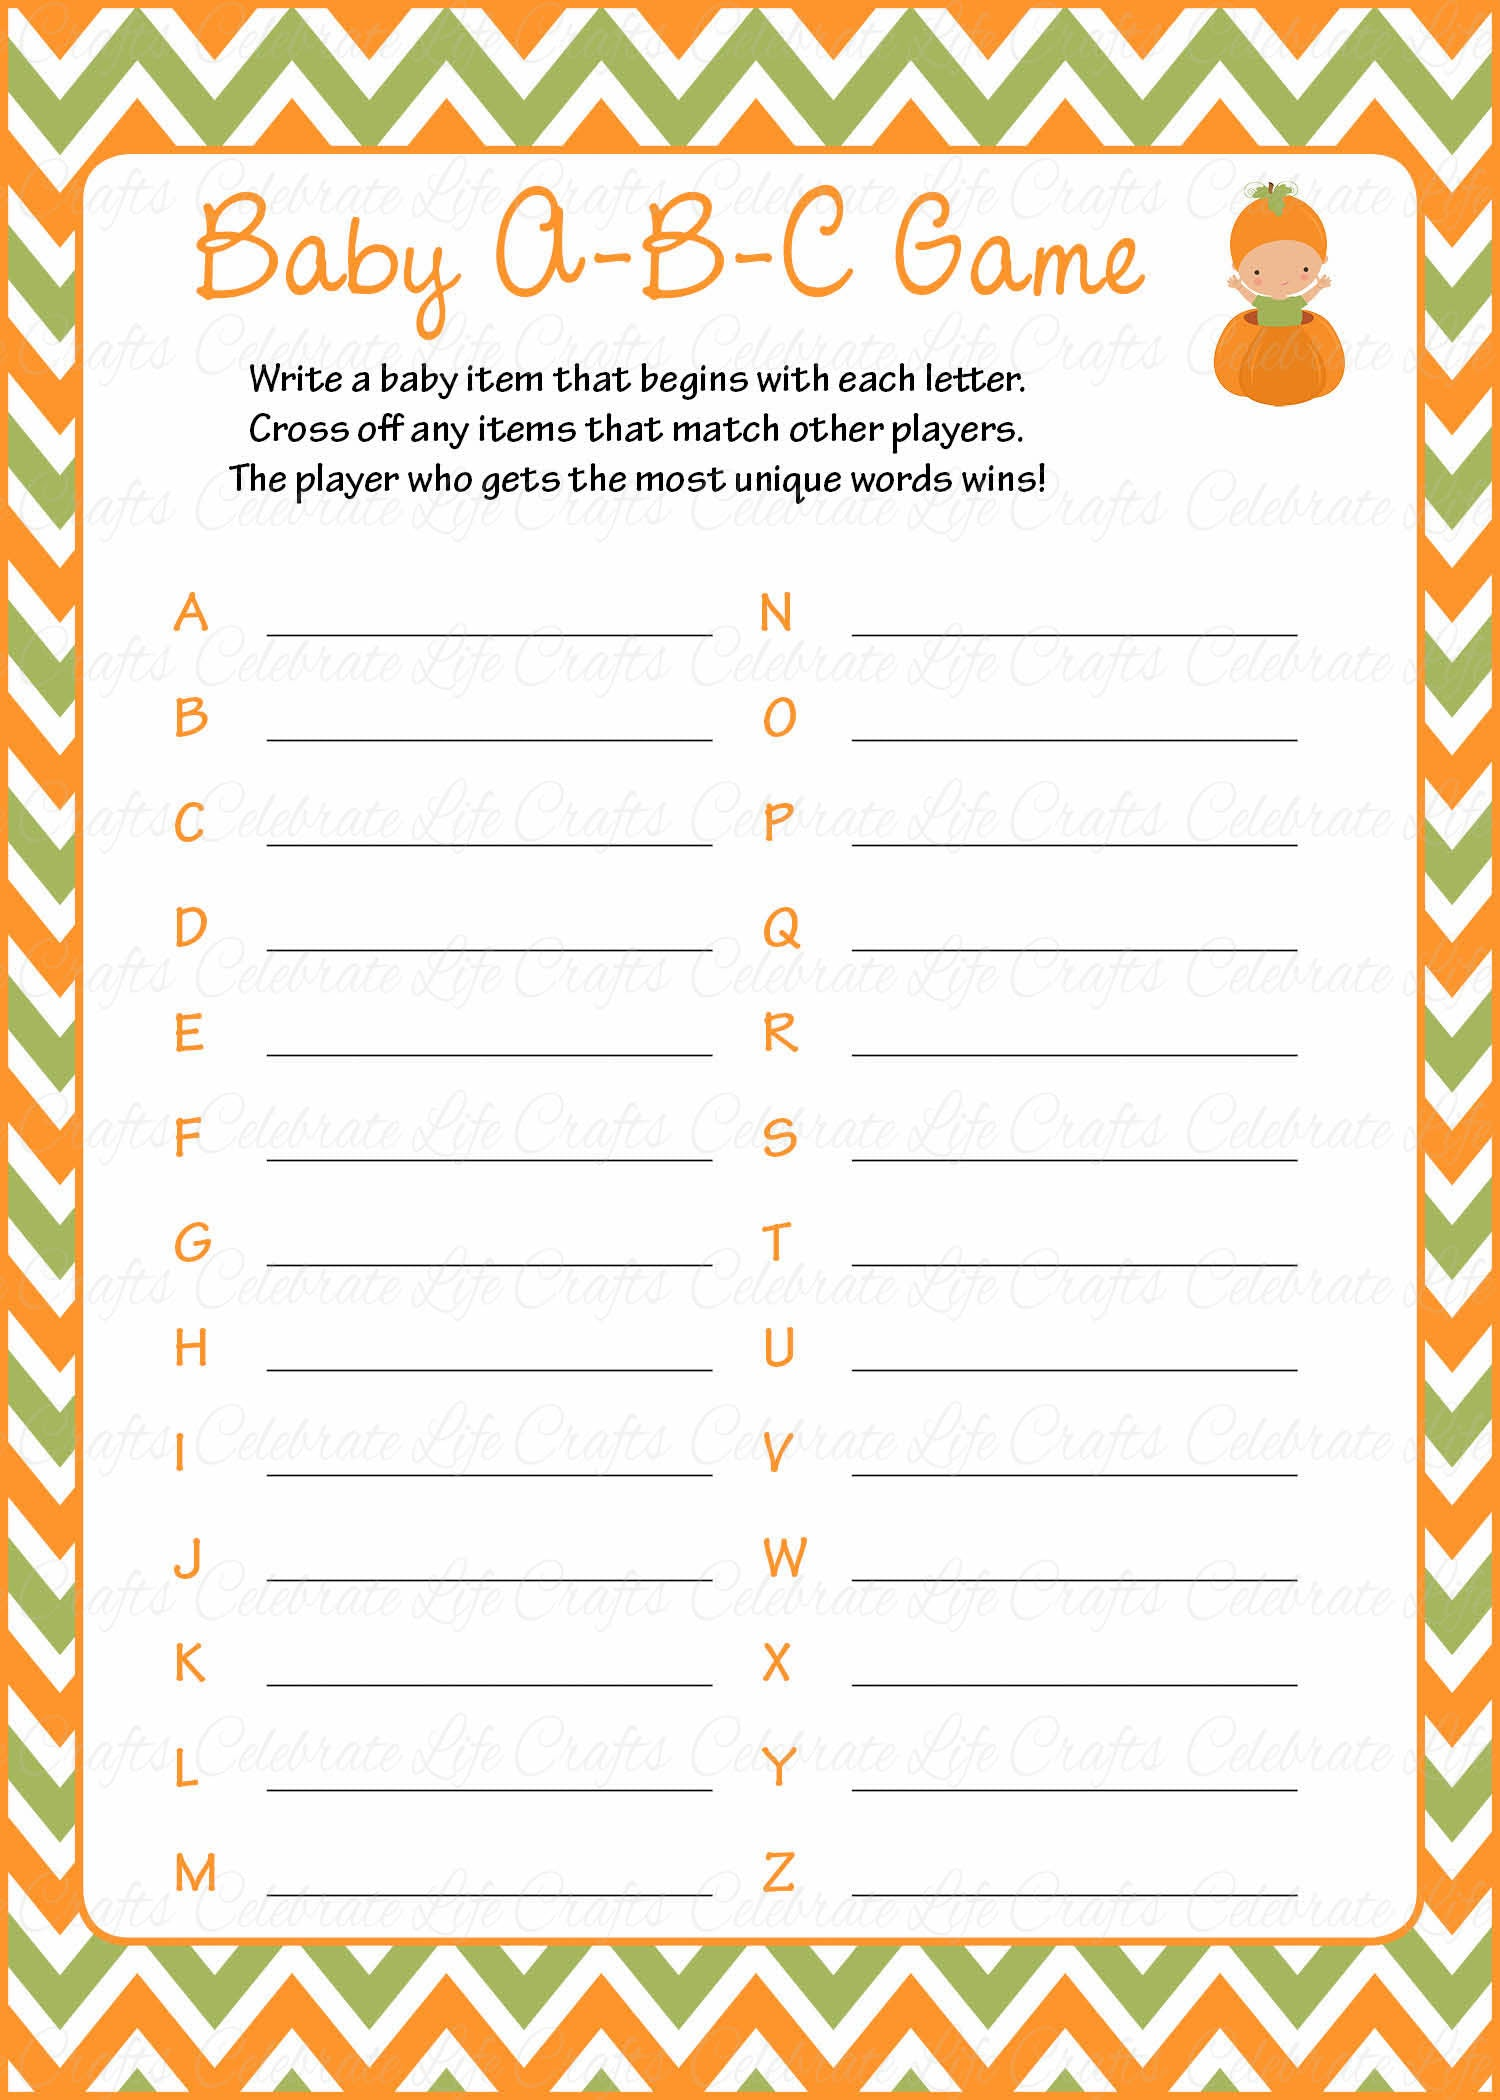 Baby ABCs Baby Shower Game Little Pumpkin Baby Shower Theme for